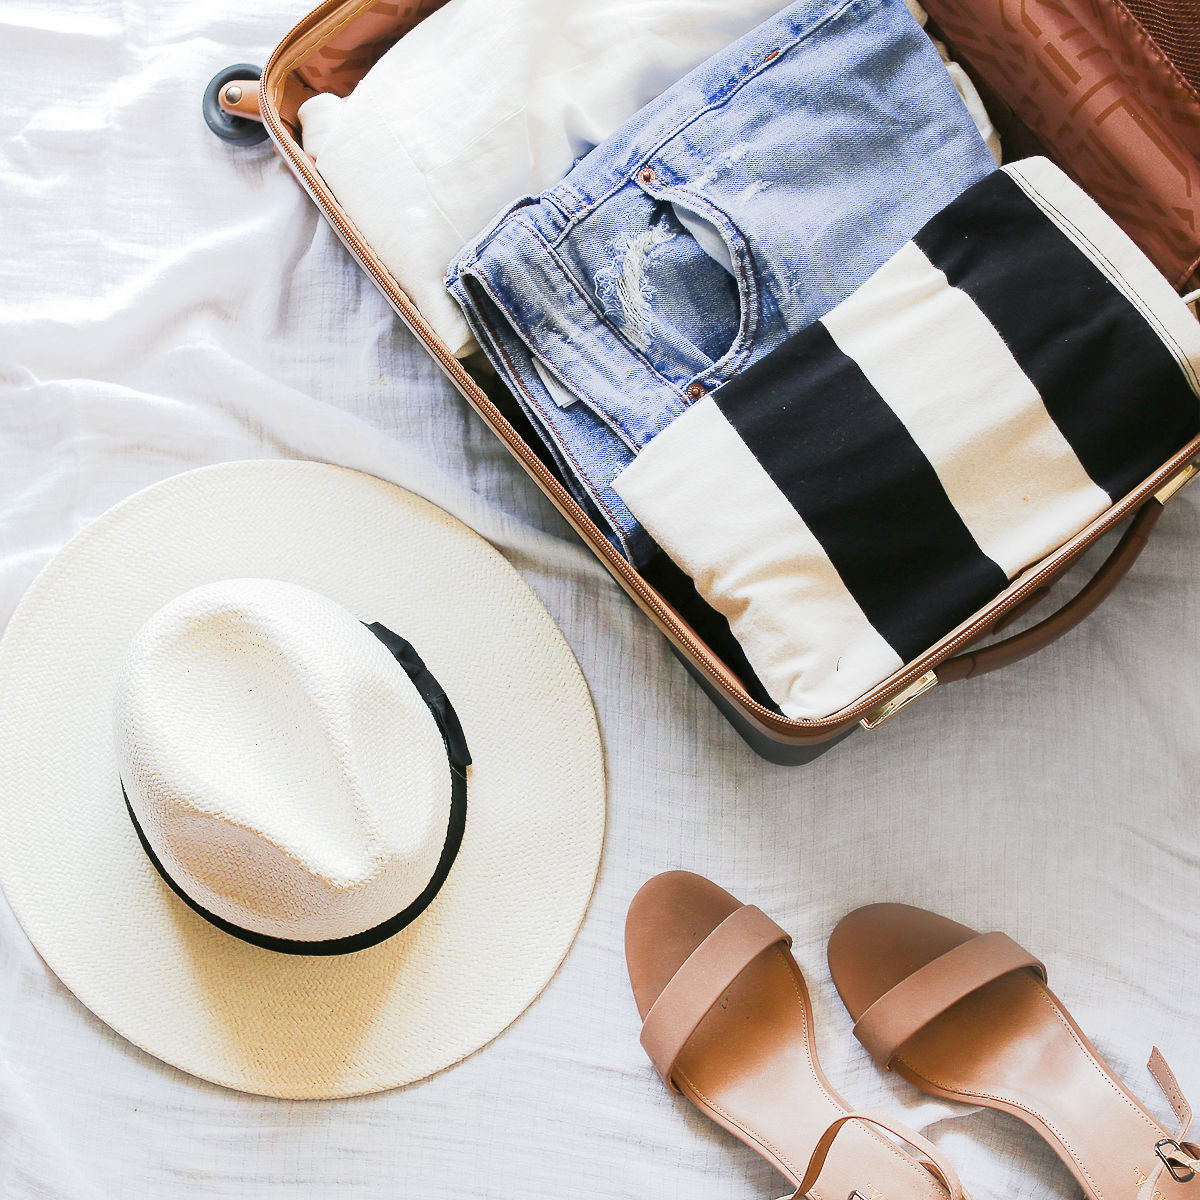 advice for packing a suitcase